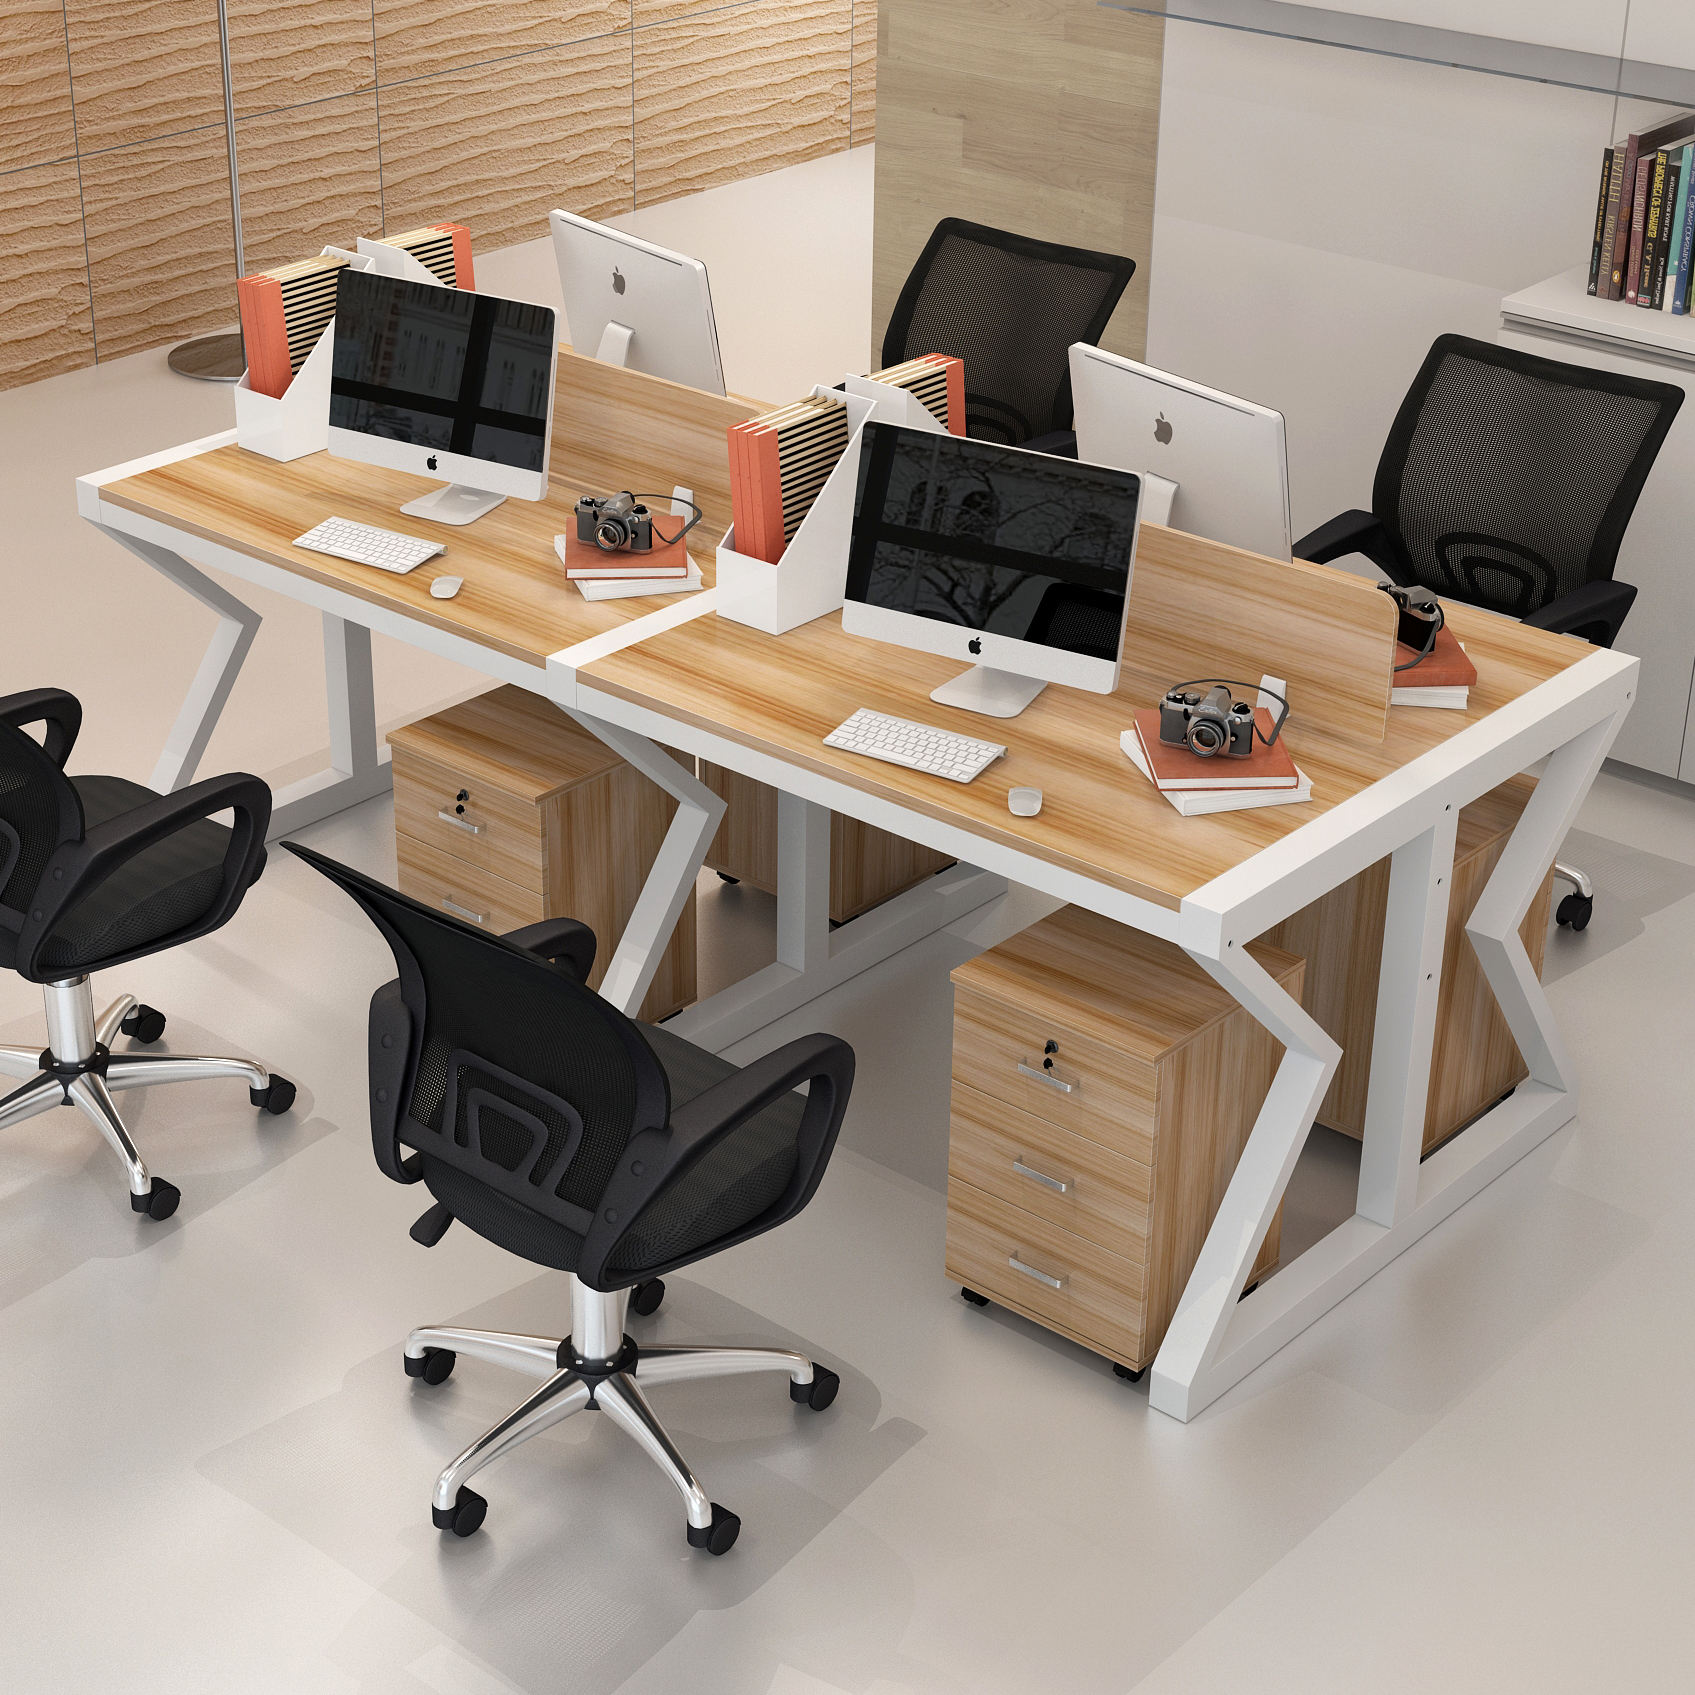 Exquisite Workmanship Office Furniture Cheap Reasonable Price Office Furniture